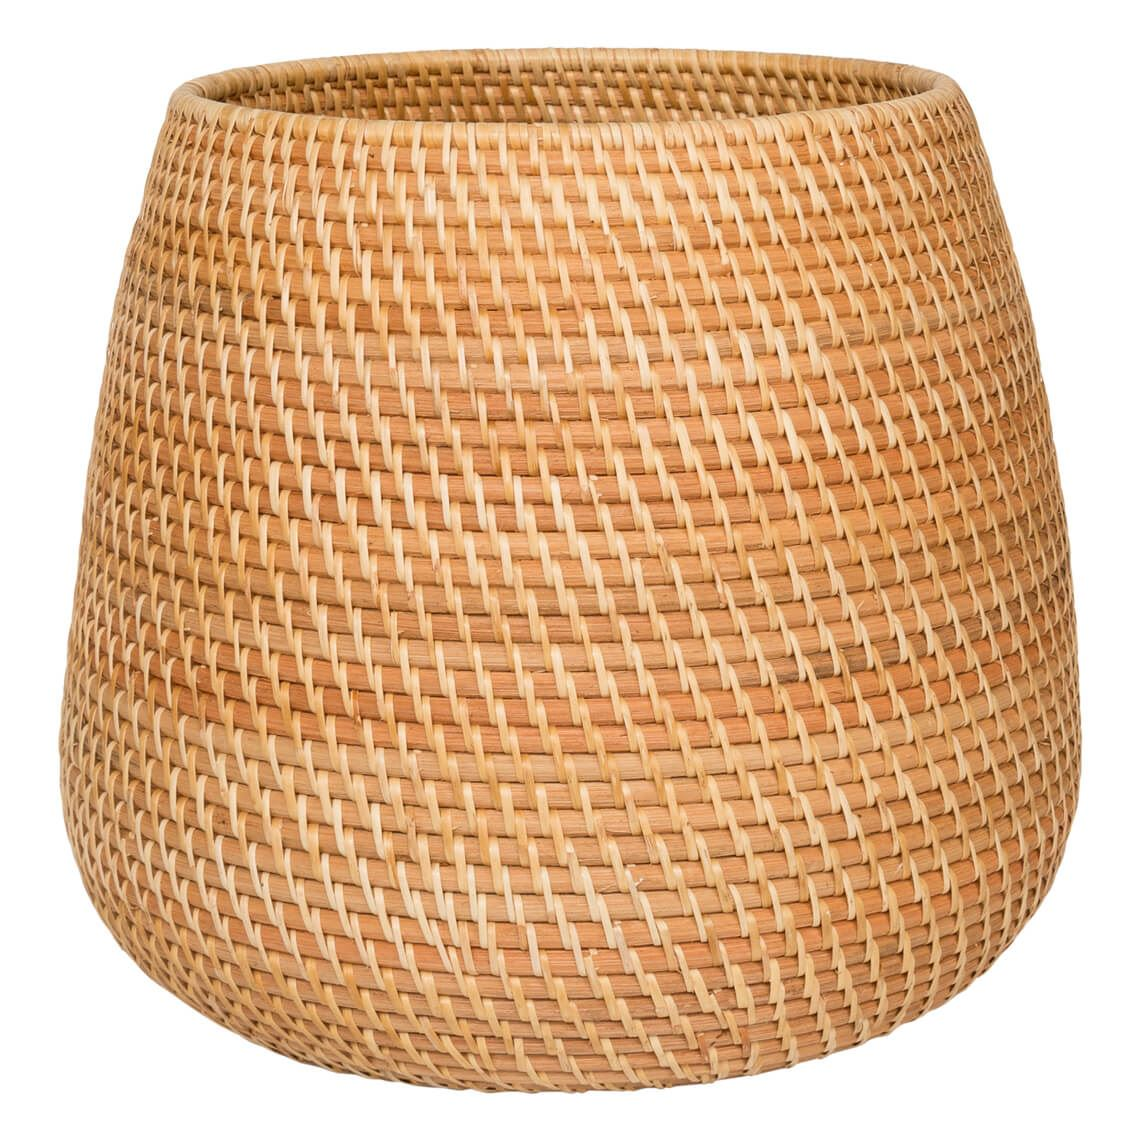 Rattan Basket Natural (D) by Freedom by Freedom, a Baskets & Boxes for sale on Style Sourcebook